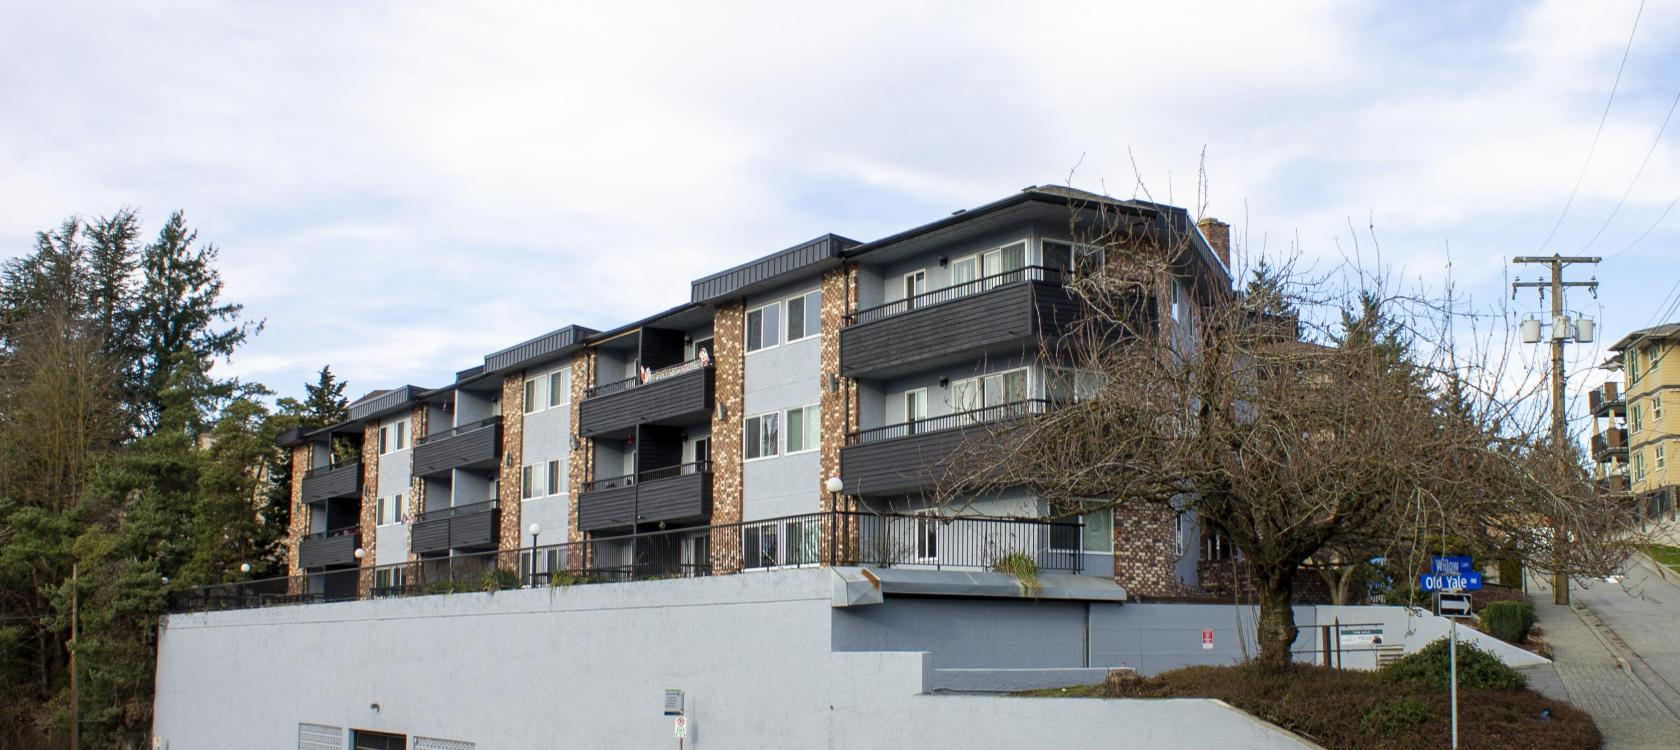 118 - 2551 Willow Lane, Central Abbotsford, Abbotsford 2